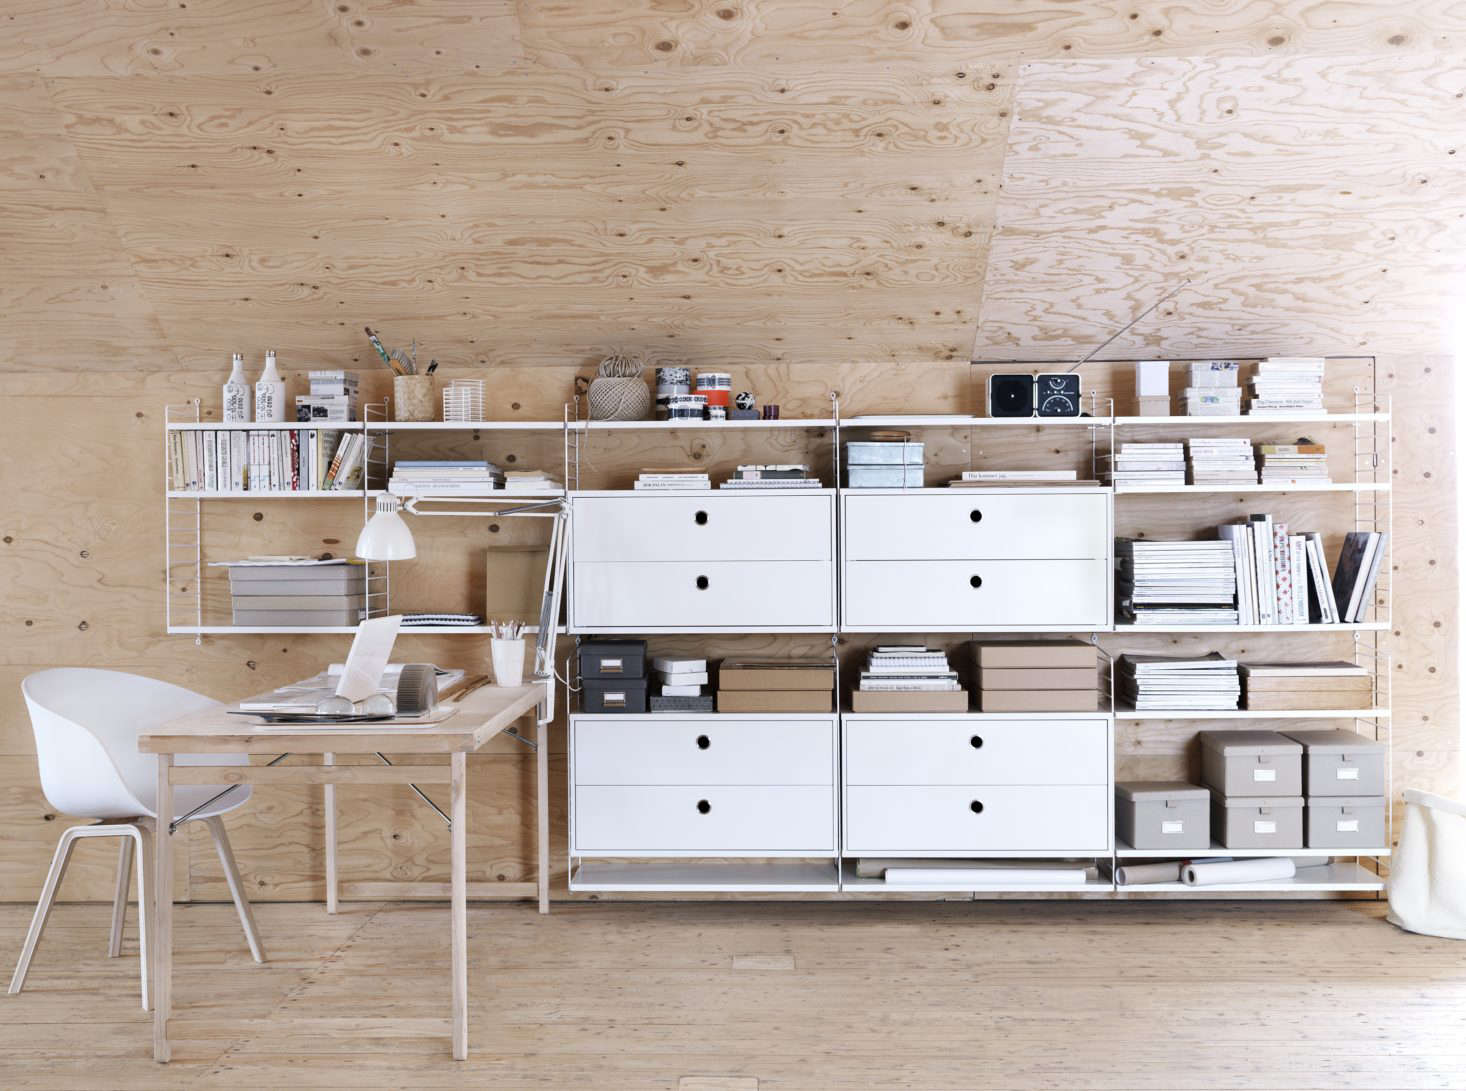 The Clical String Shelf Modular System Was Designed In 1946 By Swedish Architect And Designer Nils